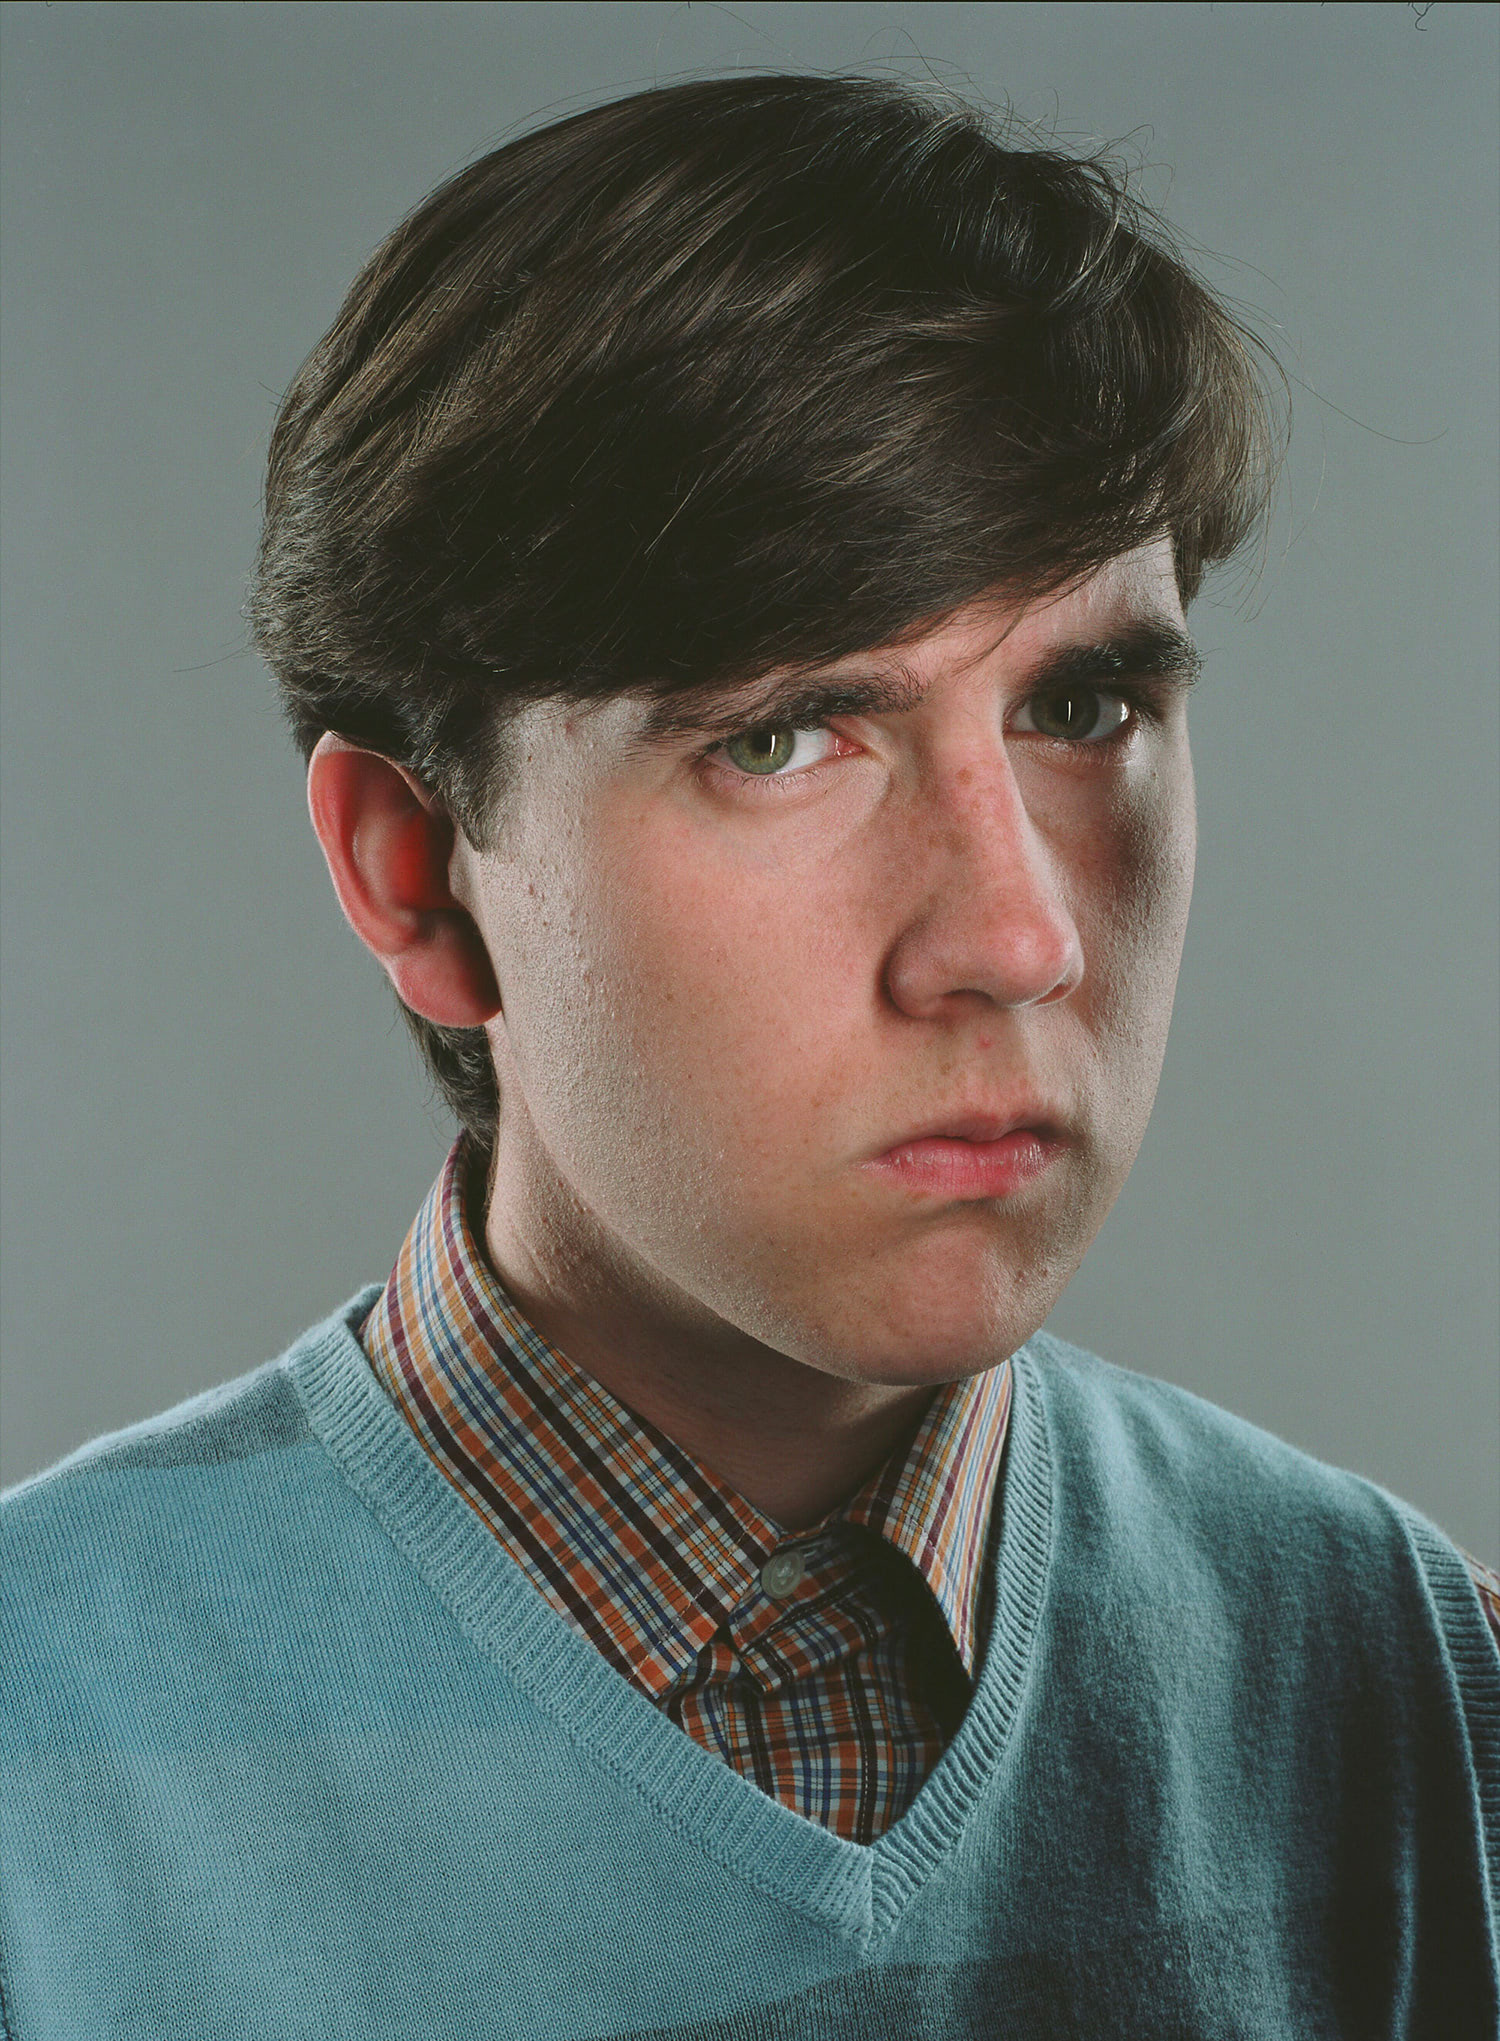 Portrait of Neville Longbottom